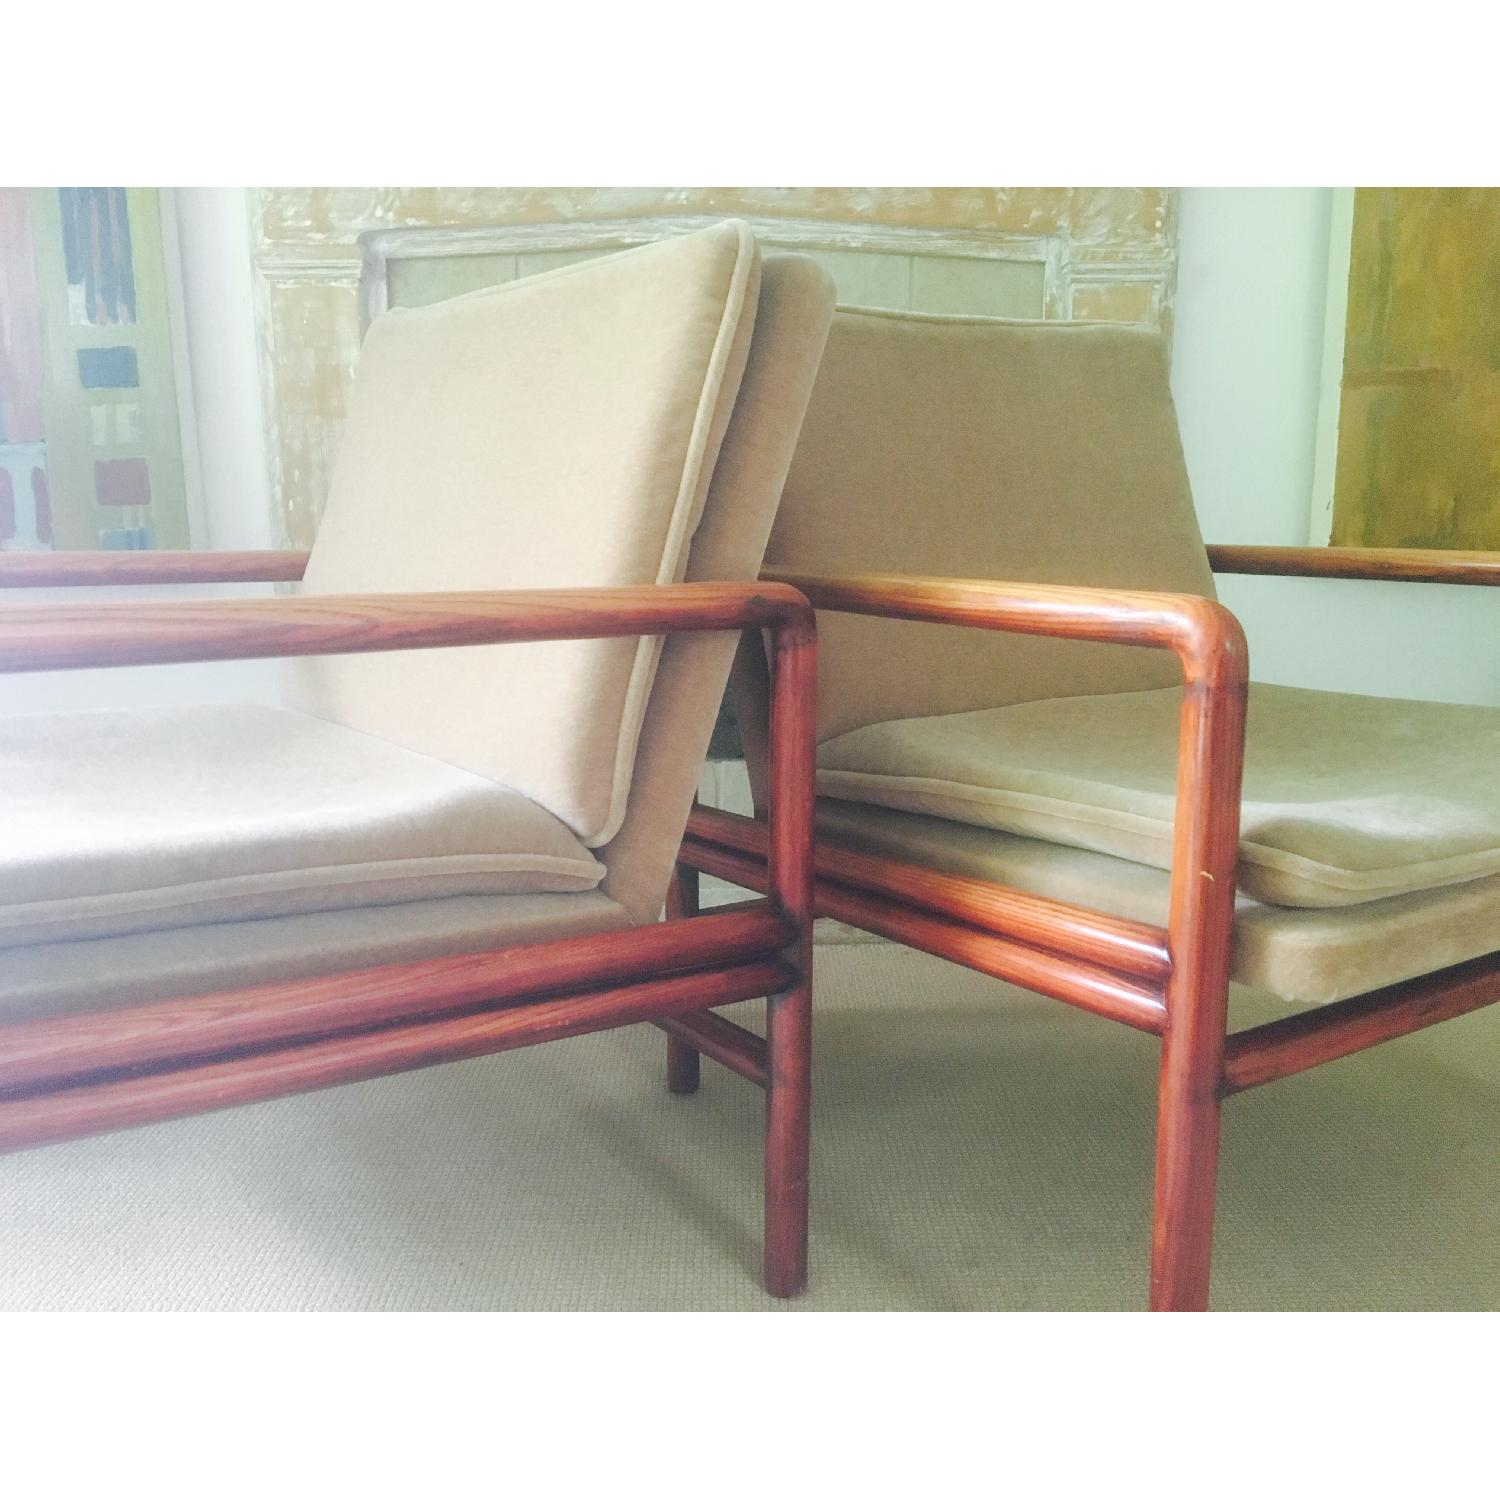 Mid Century Lounge Chairs - image-4